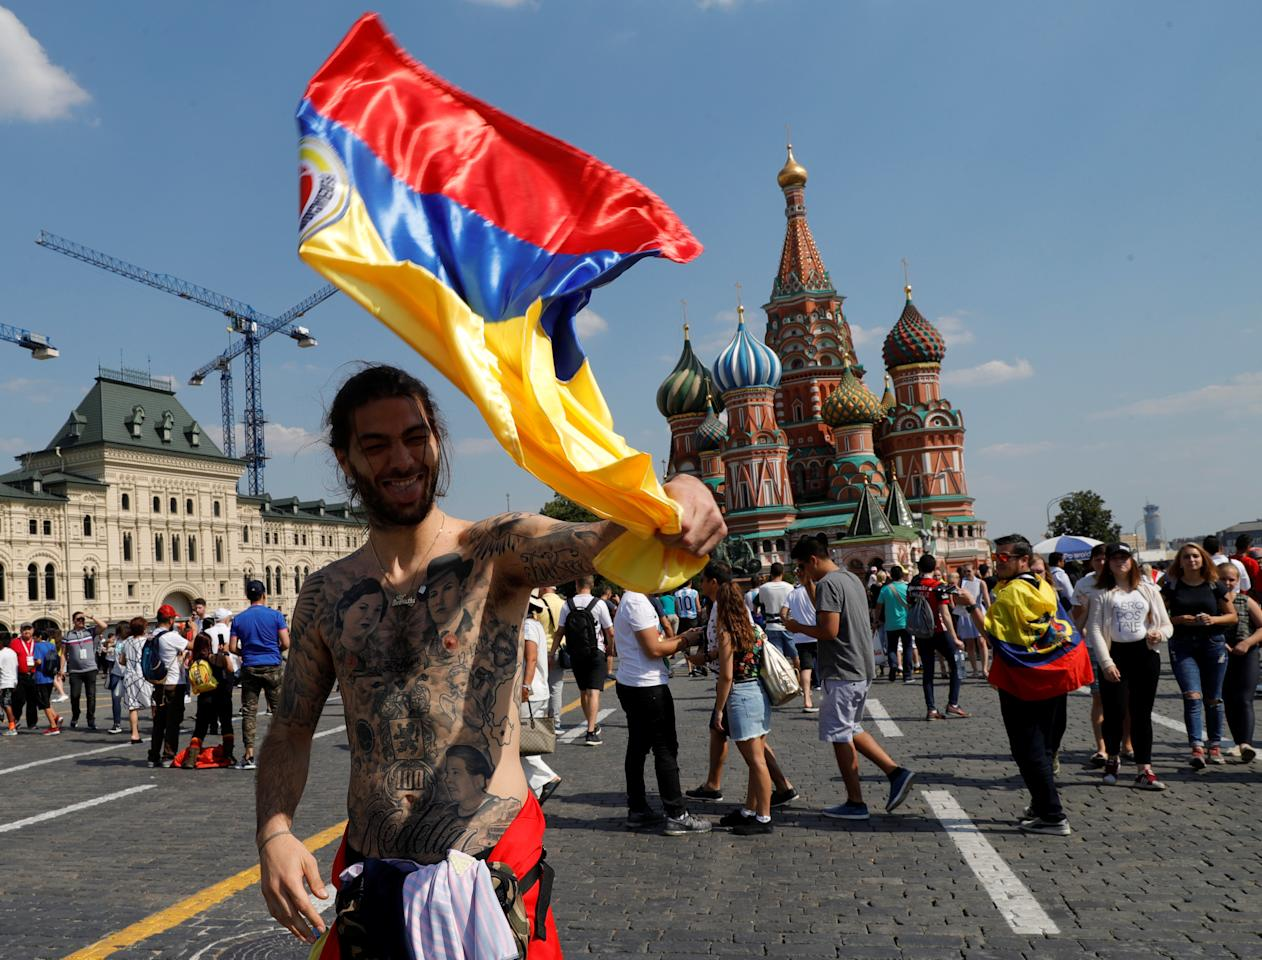 A supporter of the Colombian national soccer team waves a flag in front of St. Basil's Cathedral at Red Square in Moscow, Russia June 18, 2018. REUTERS/Tatyana Makeyeva